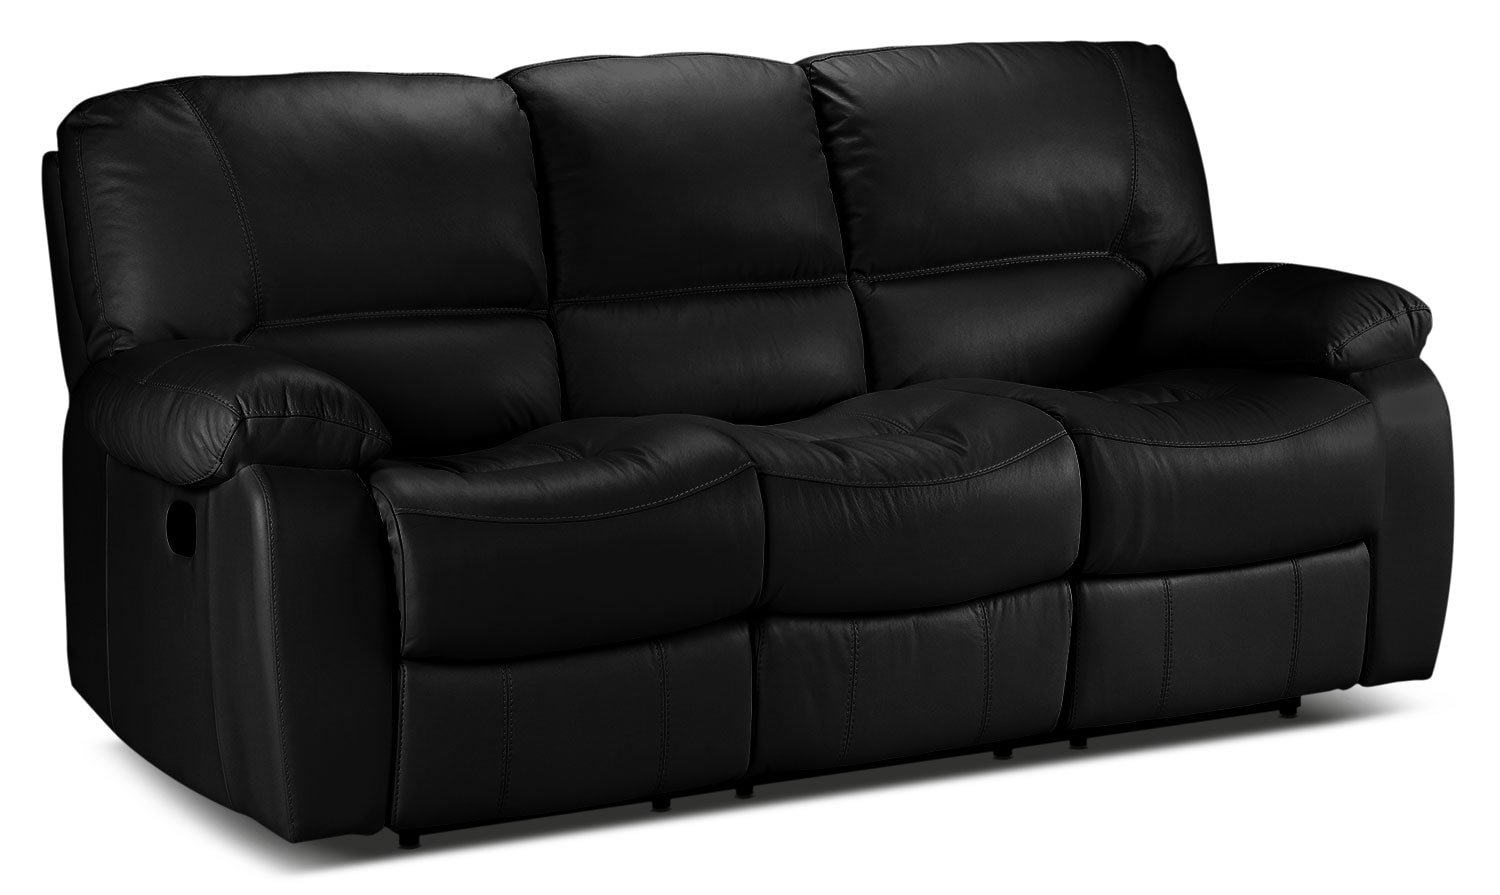 Living Room Furniture - Piermont Reclining Sofa - Black